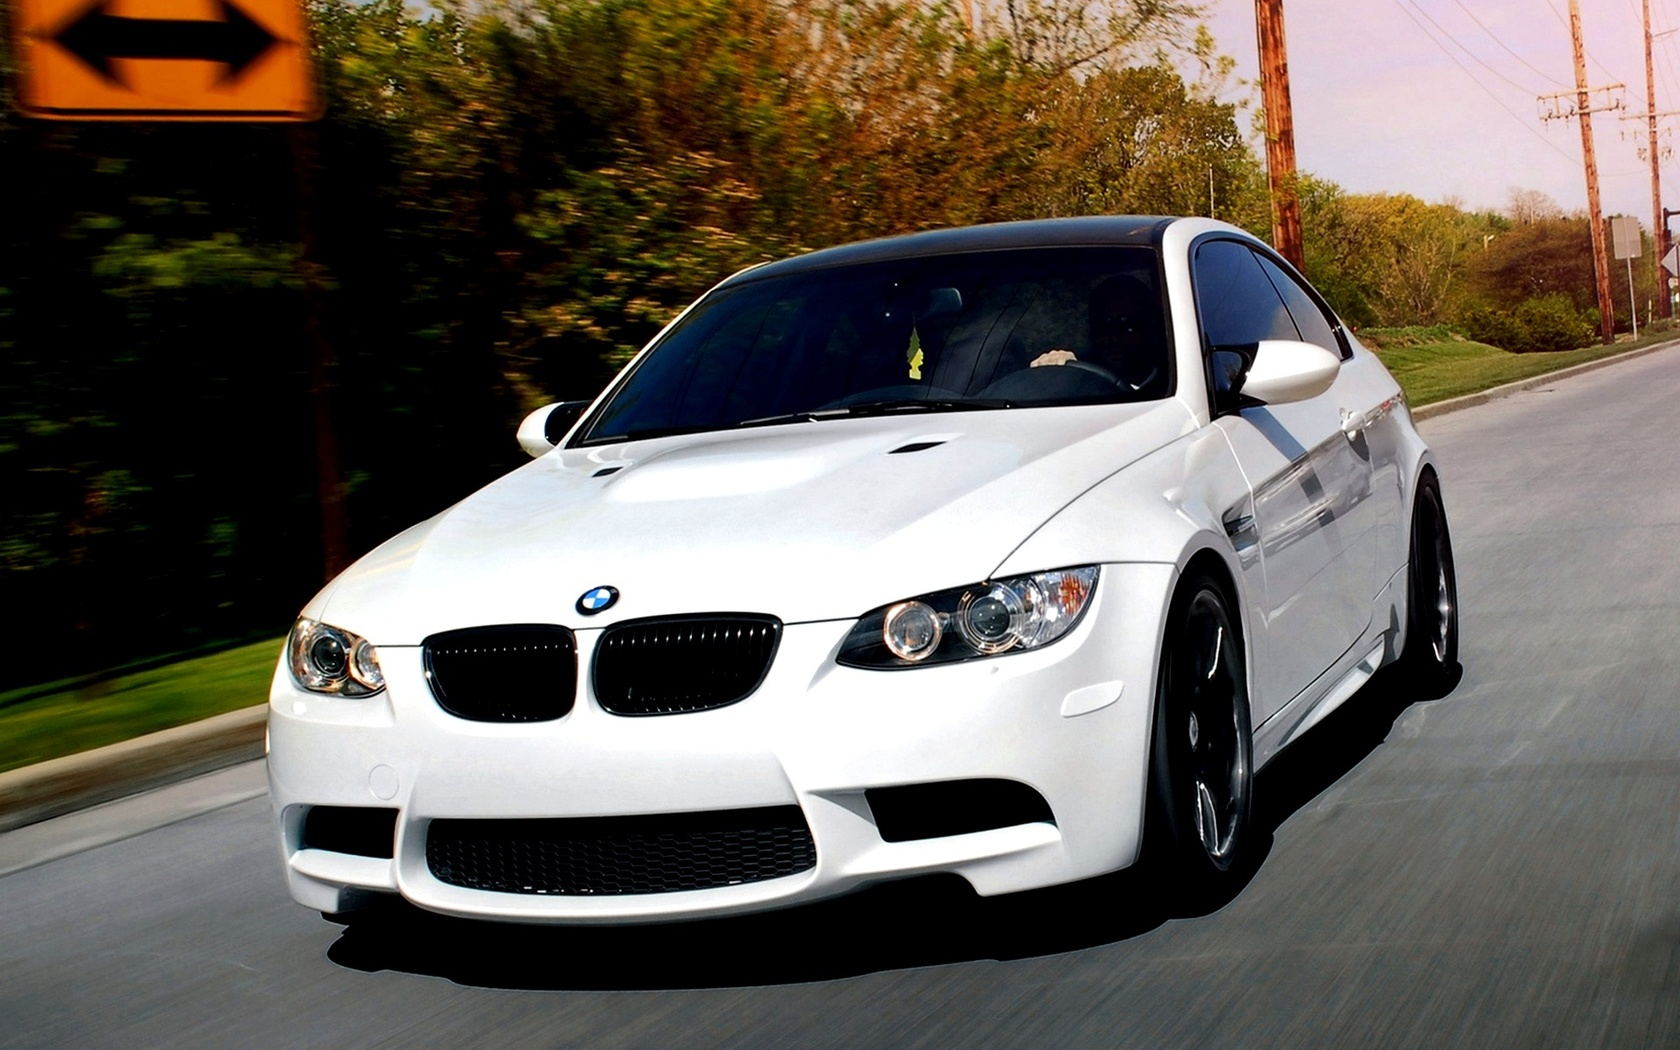 Bmw White Car Wallpapers 1680x1050 471982